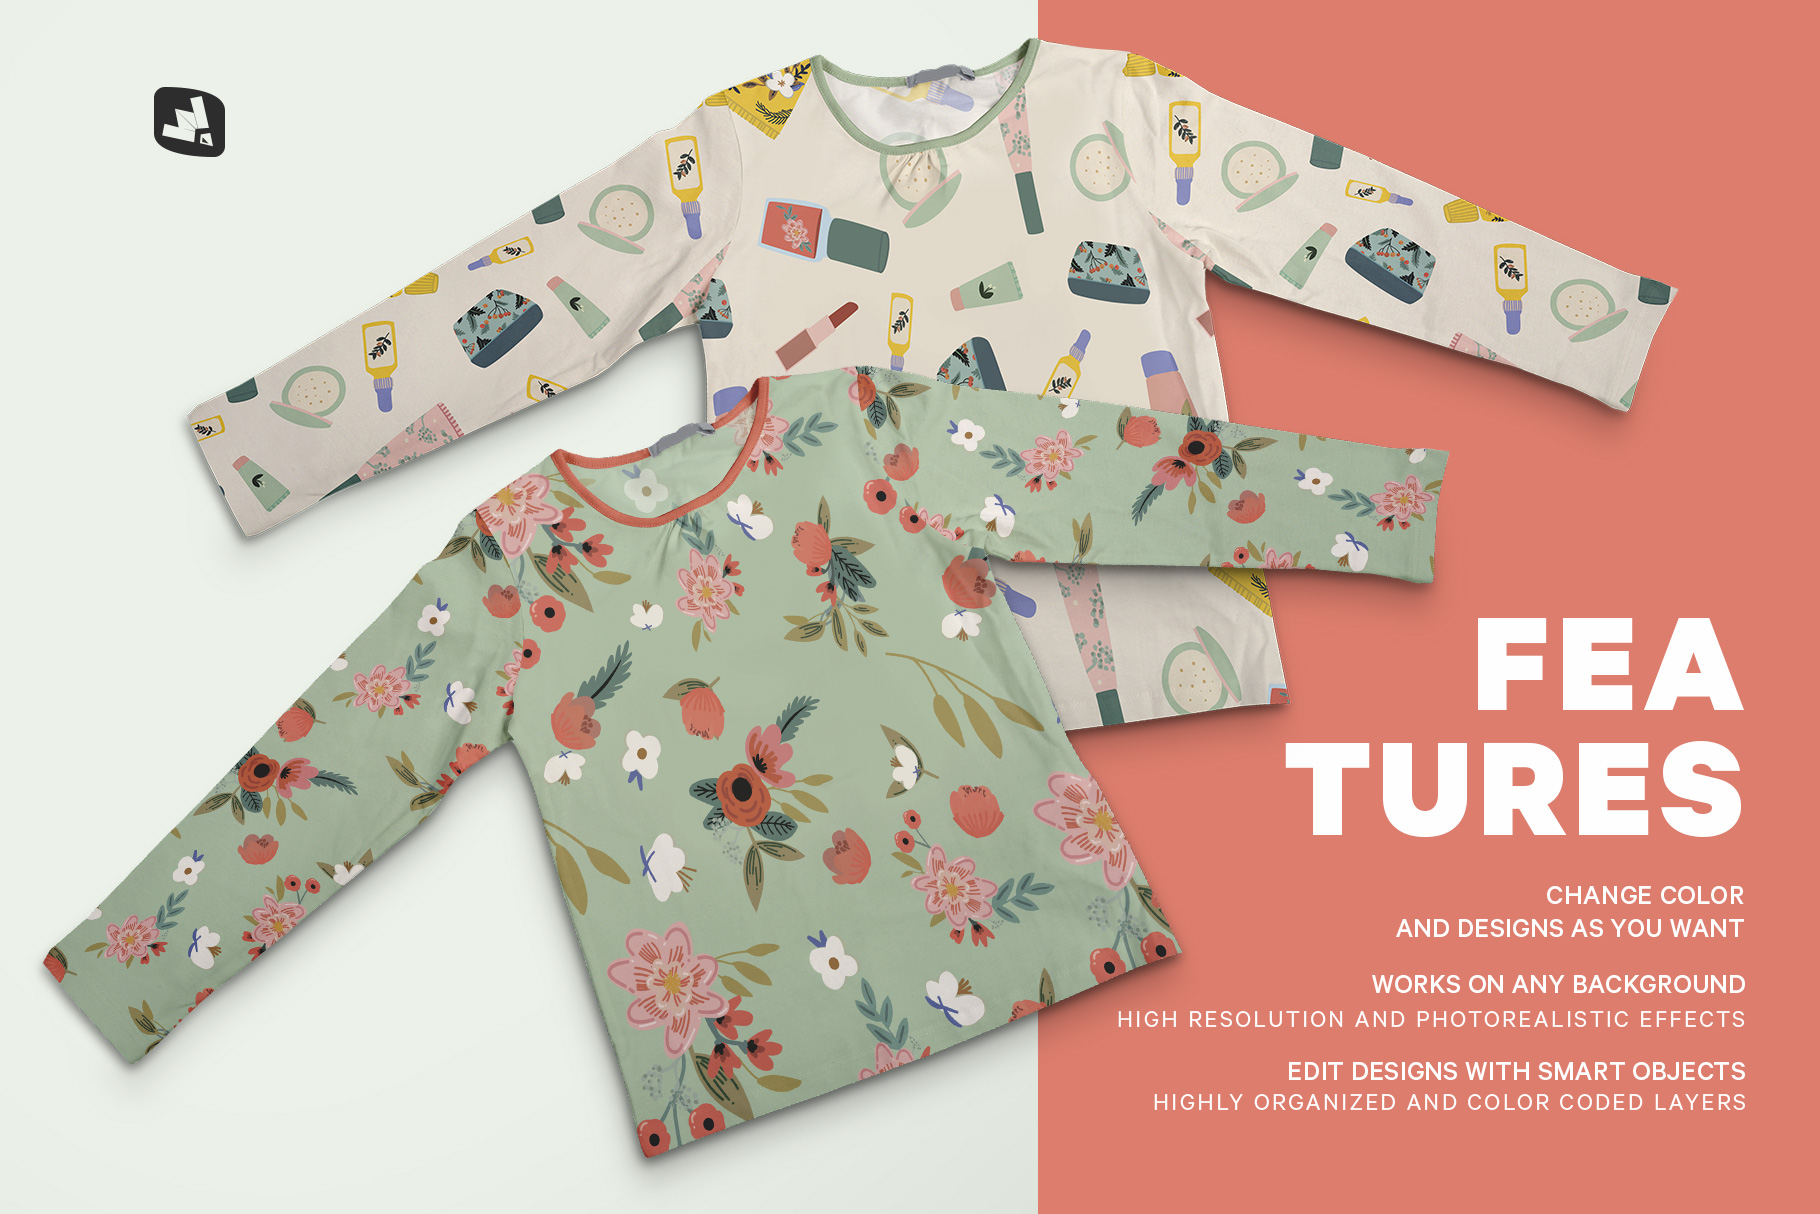 features of the top view girls full sleeve top mockup